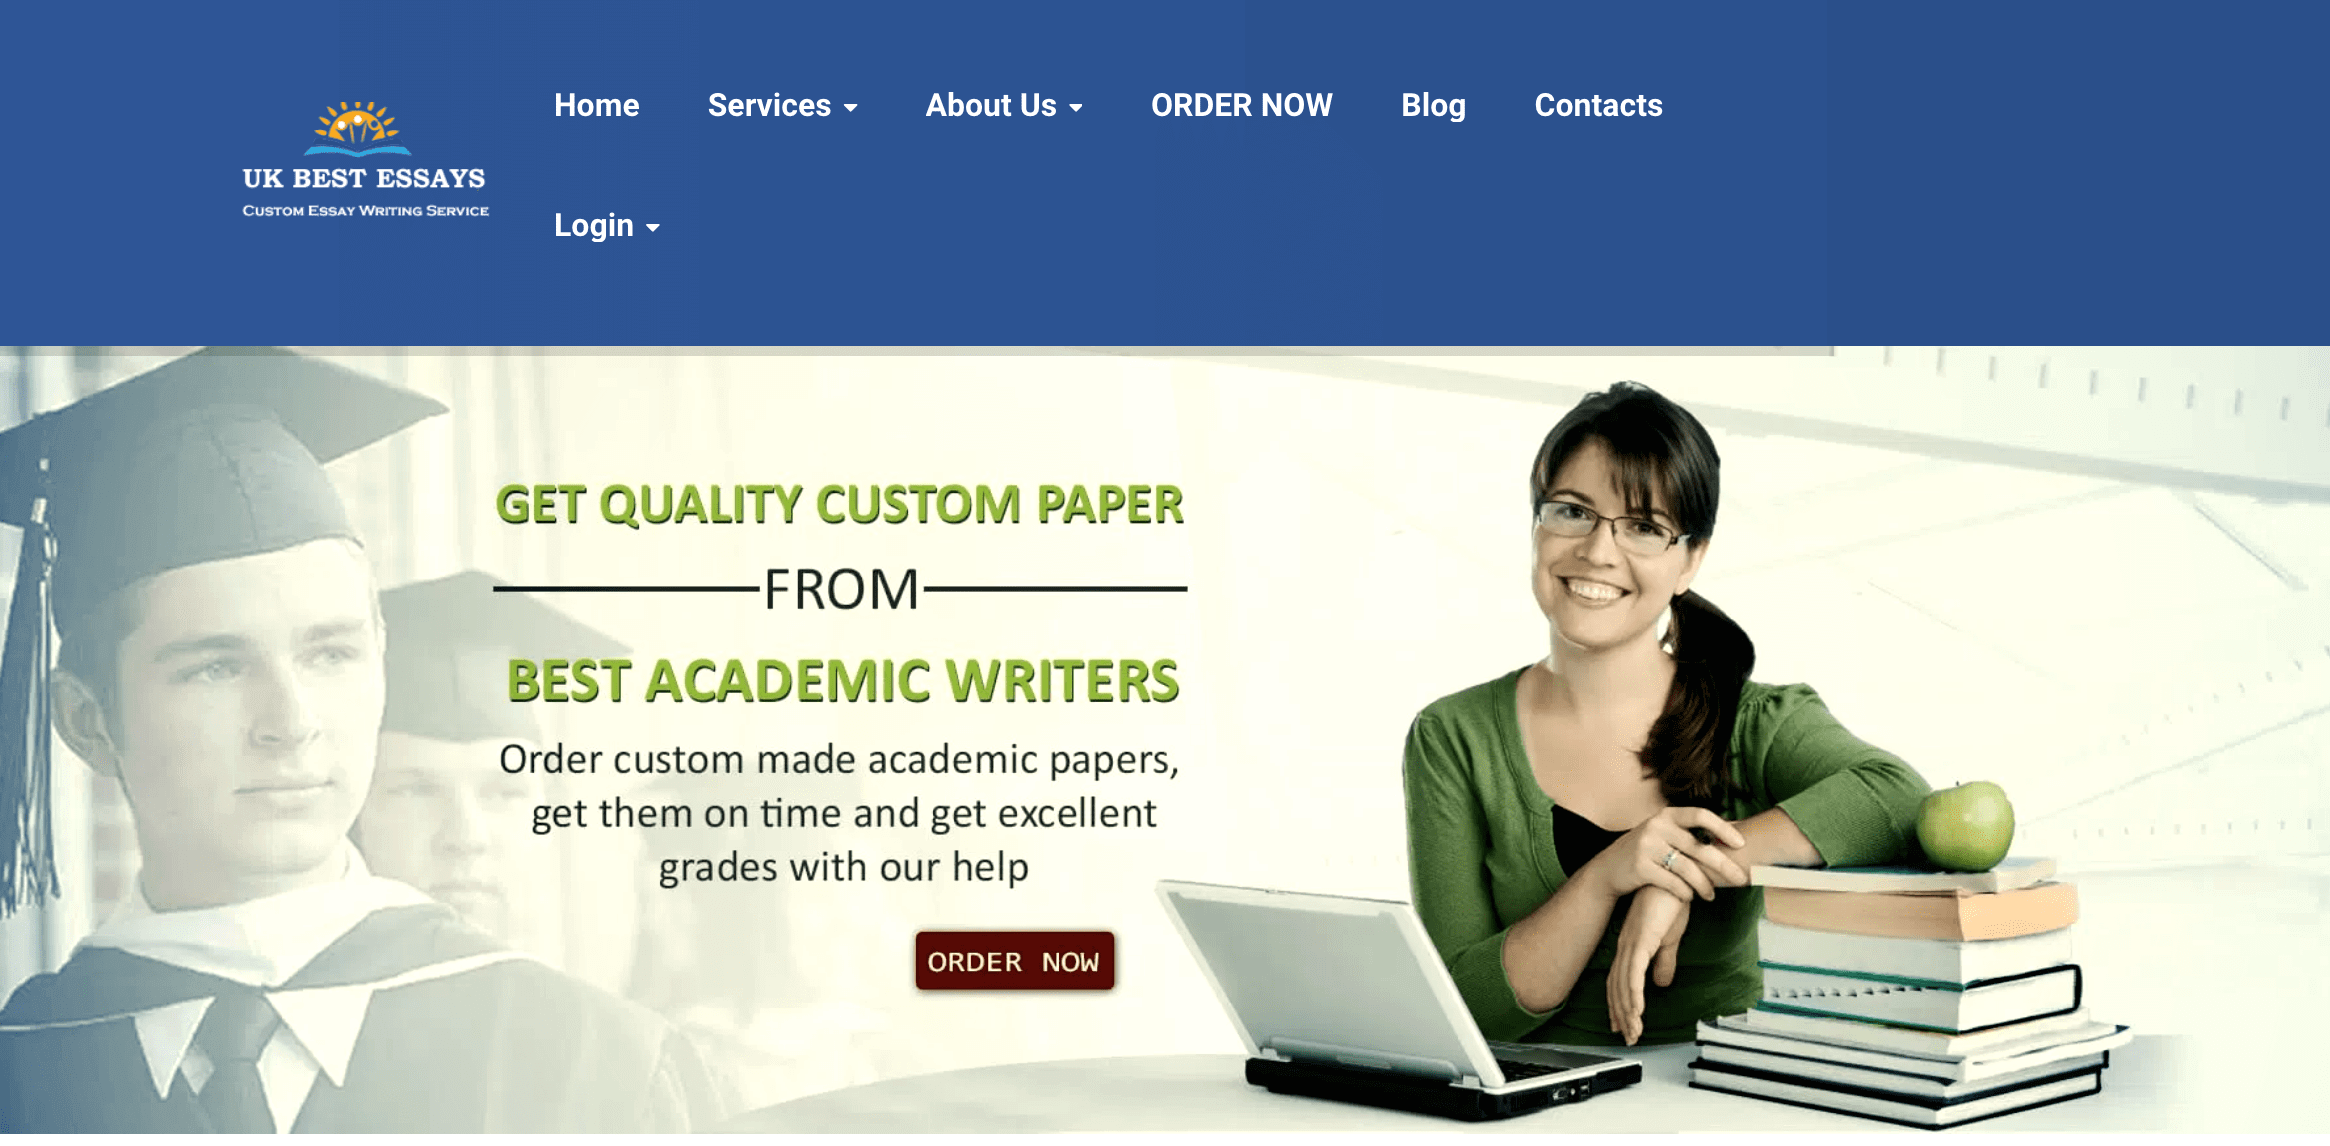 Ukbestessayscom Review  Top Custom Essay Writing For British Students